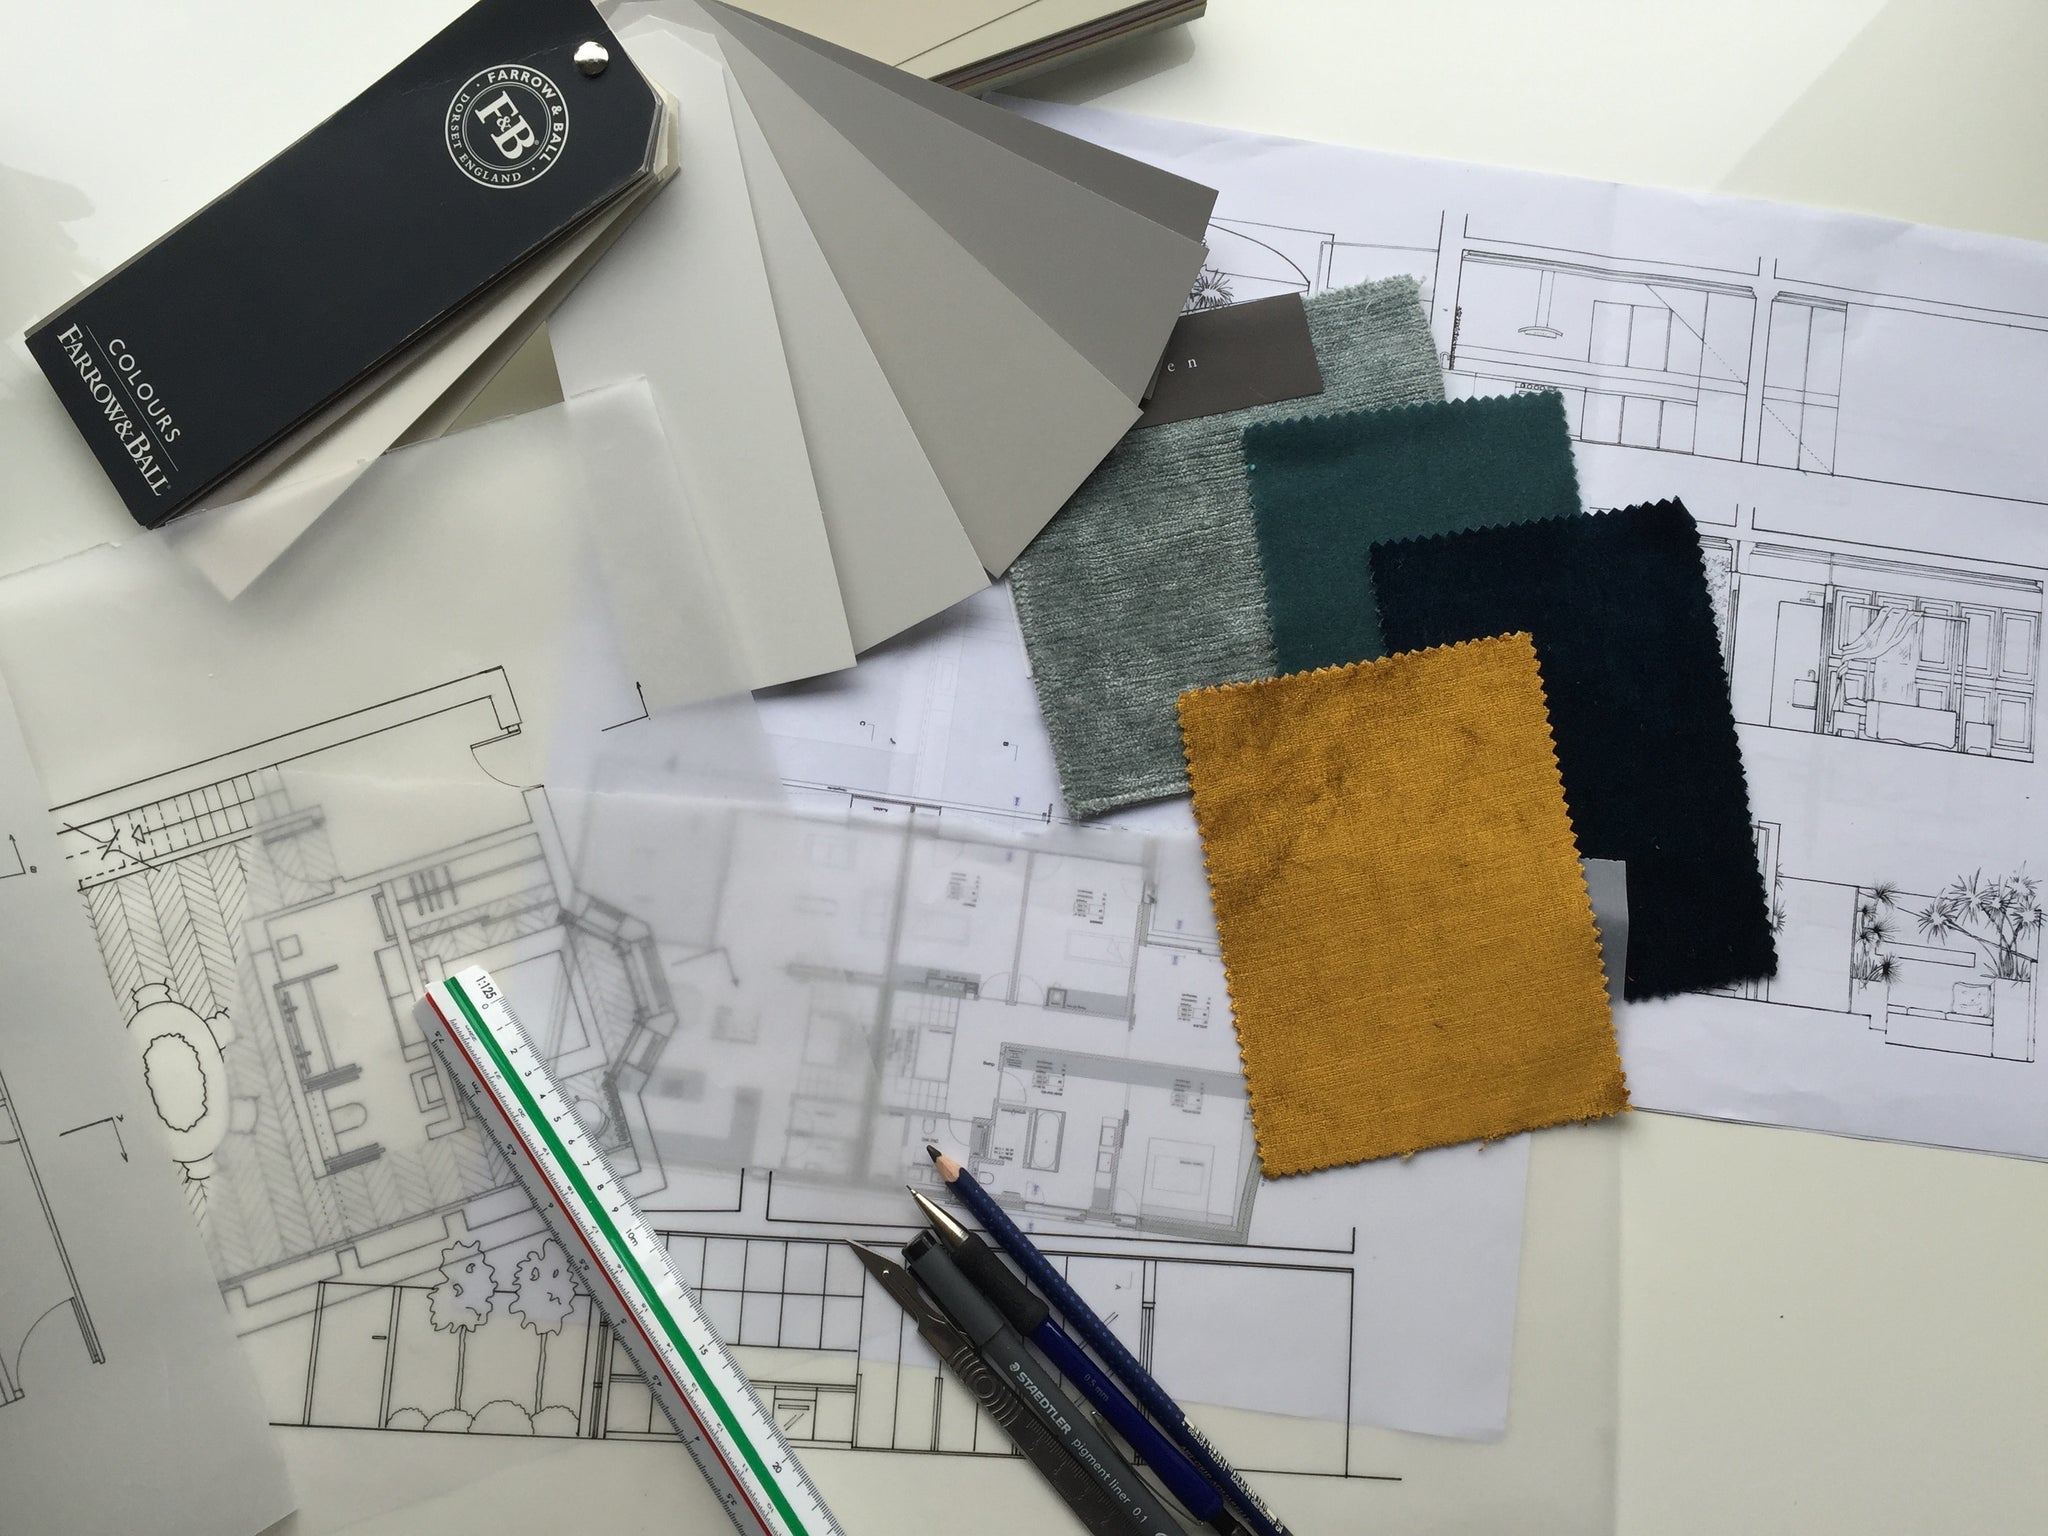 Working instruments of an interior designer, floor plans, fabric samples